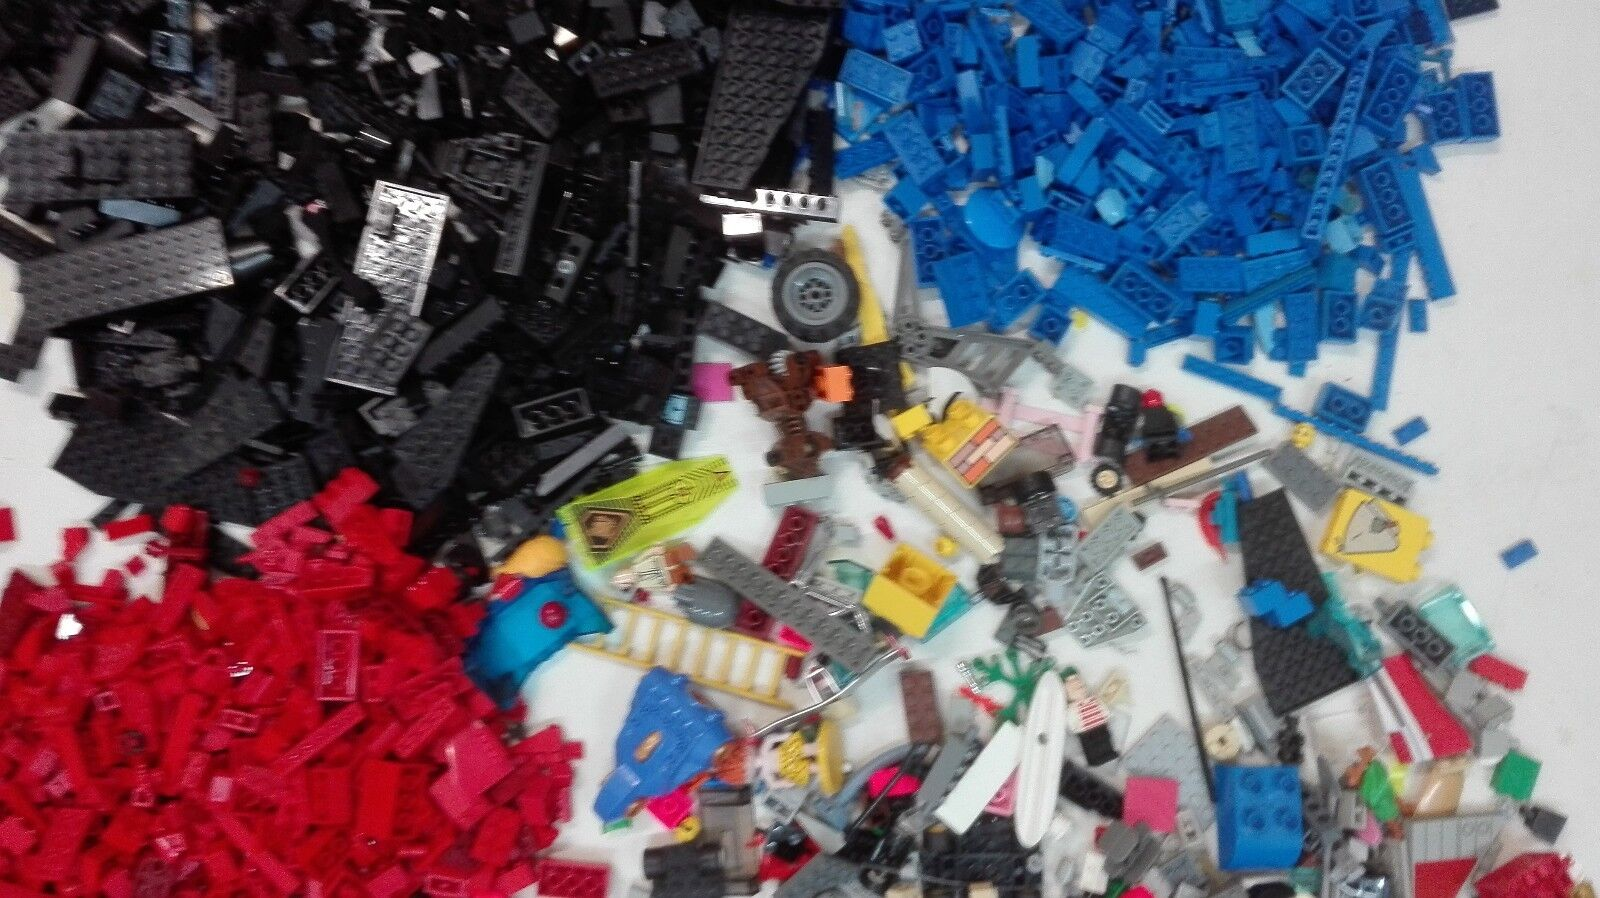 LEGO - Big Selection Of Assorted Pieces - Good Quality - 100s Of Items